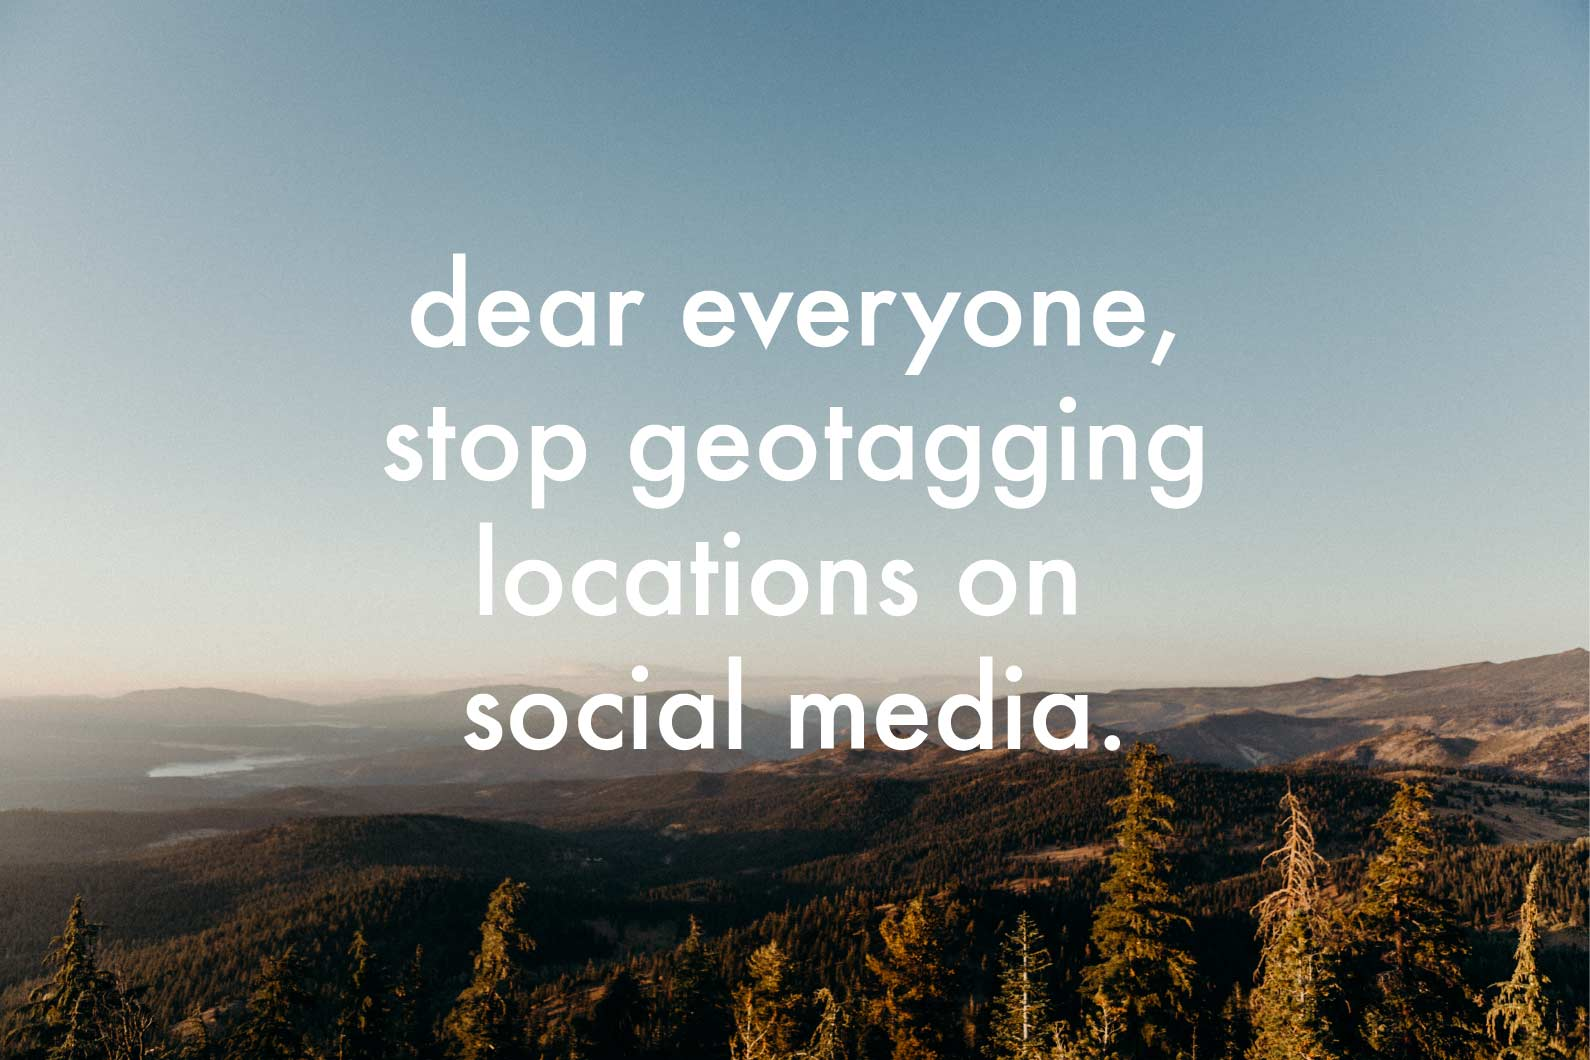 stop geotagging locations